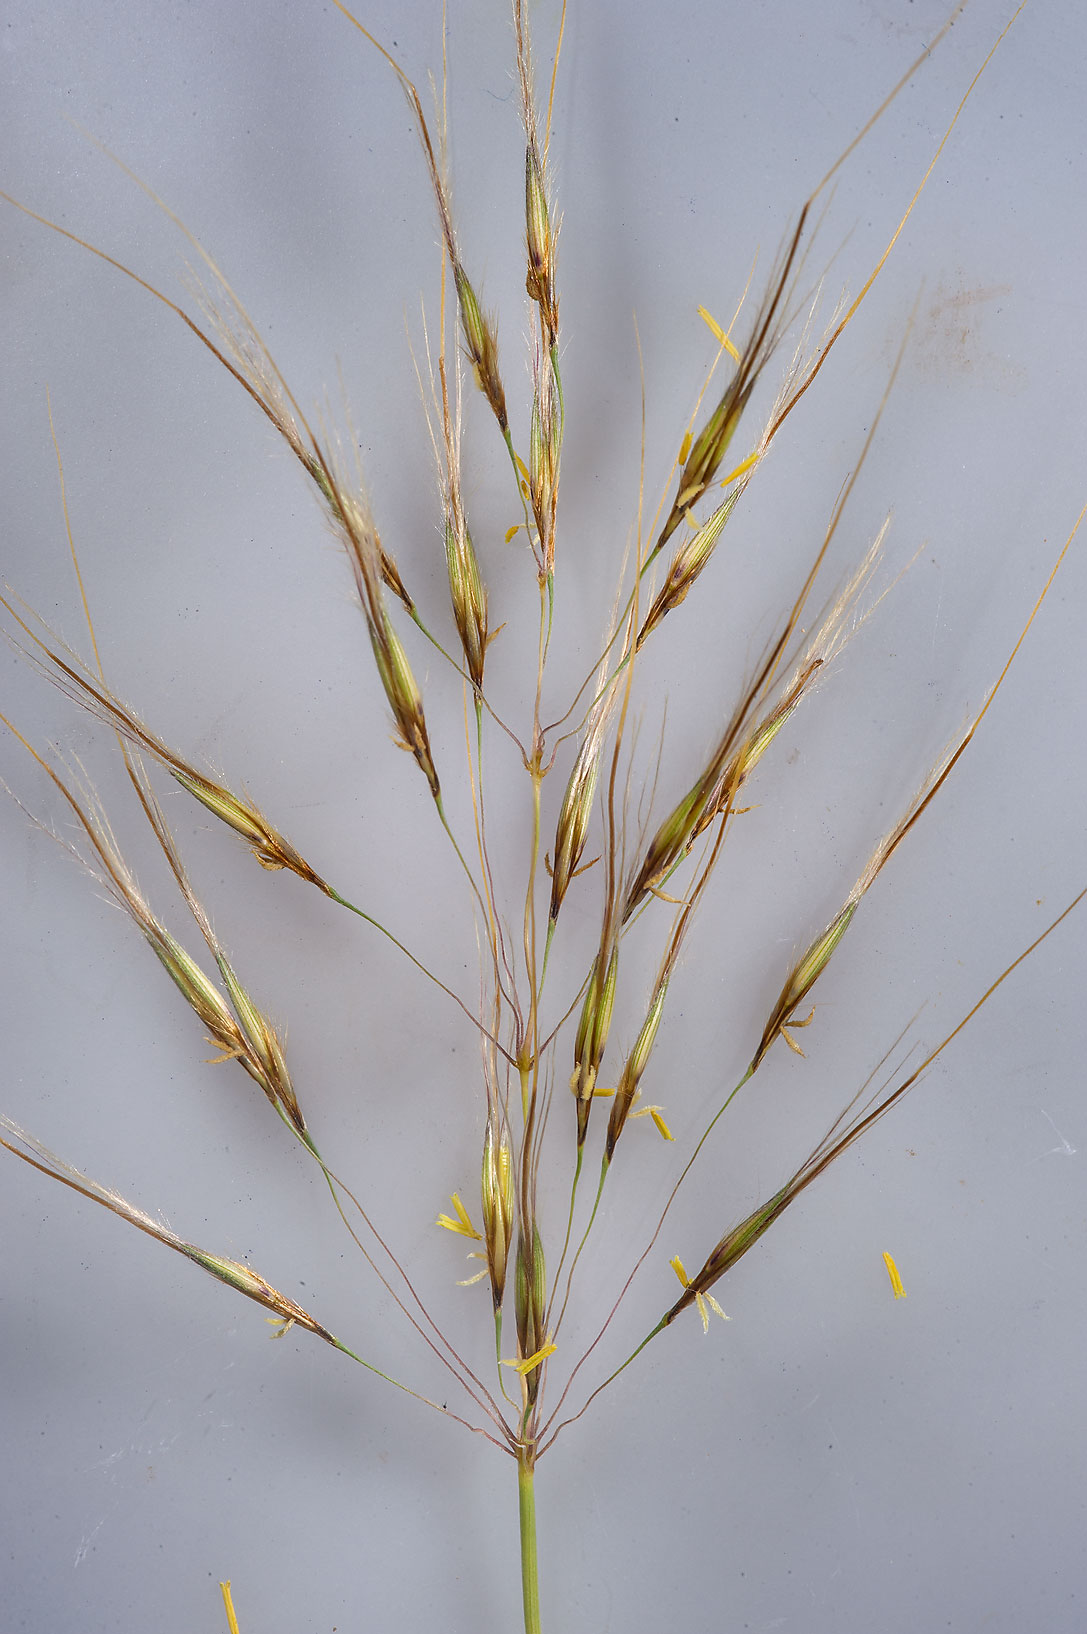 Spikelets of grass Chrysopogon plumulosus on...near Sawda Natheel Rd.. Southern Qatar